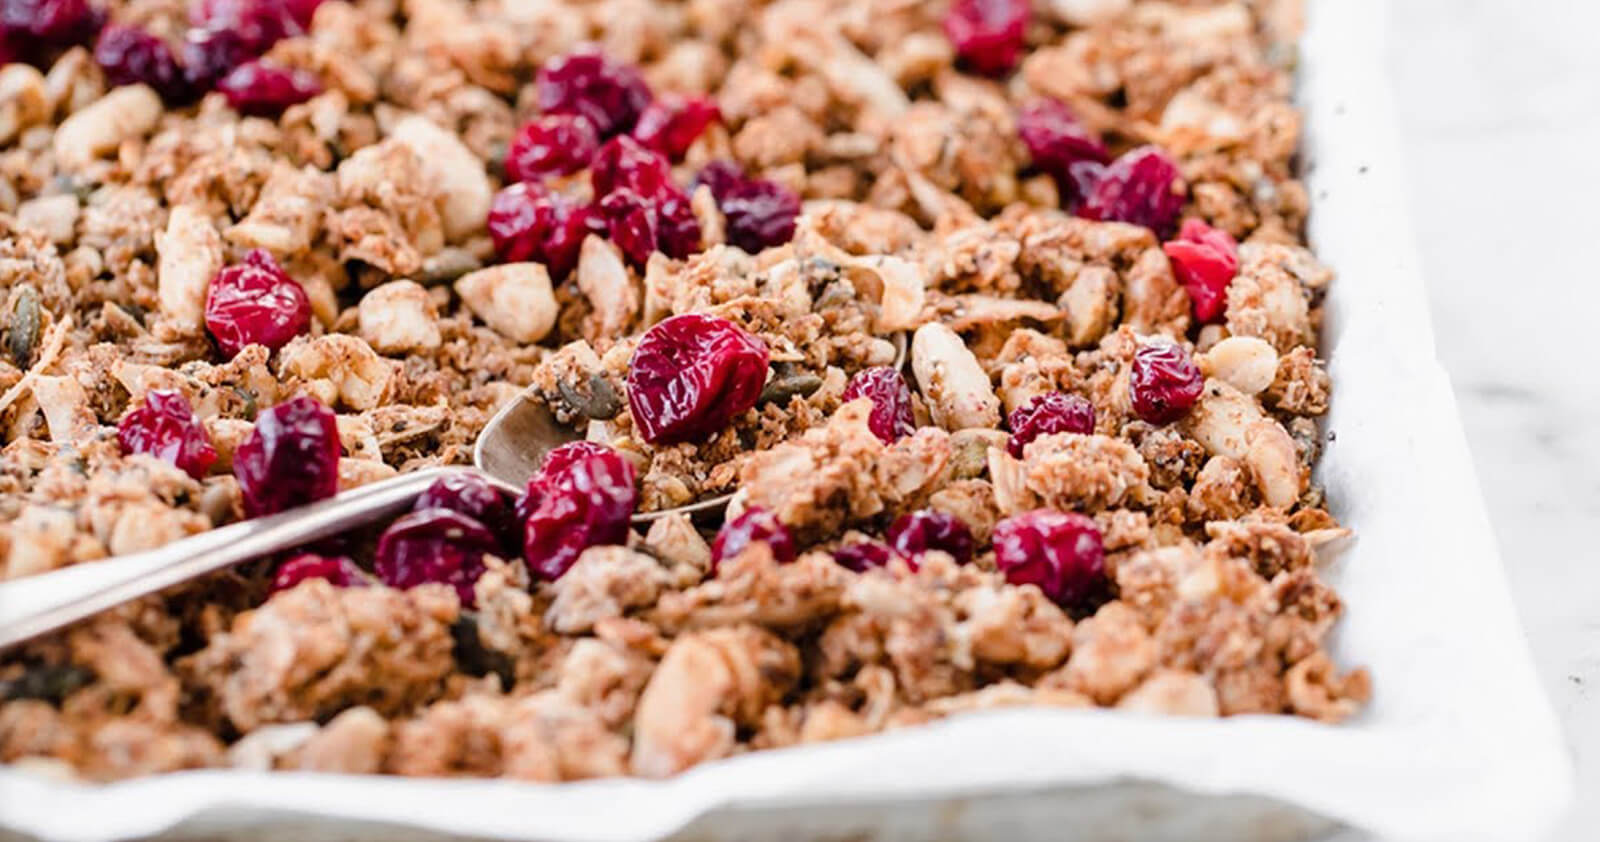 Low-Carb Cranberry Spiced Granola - Food Videography Produced for KetoDiet